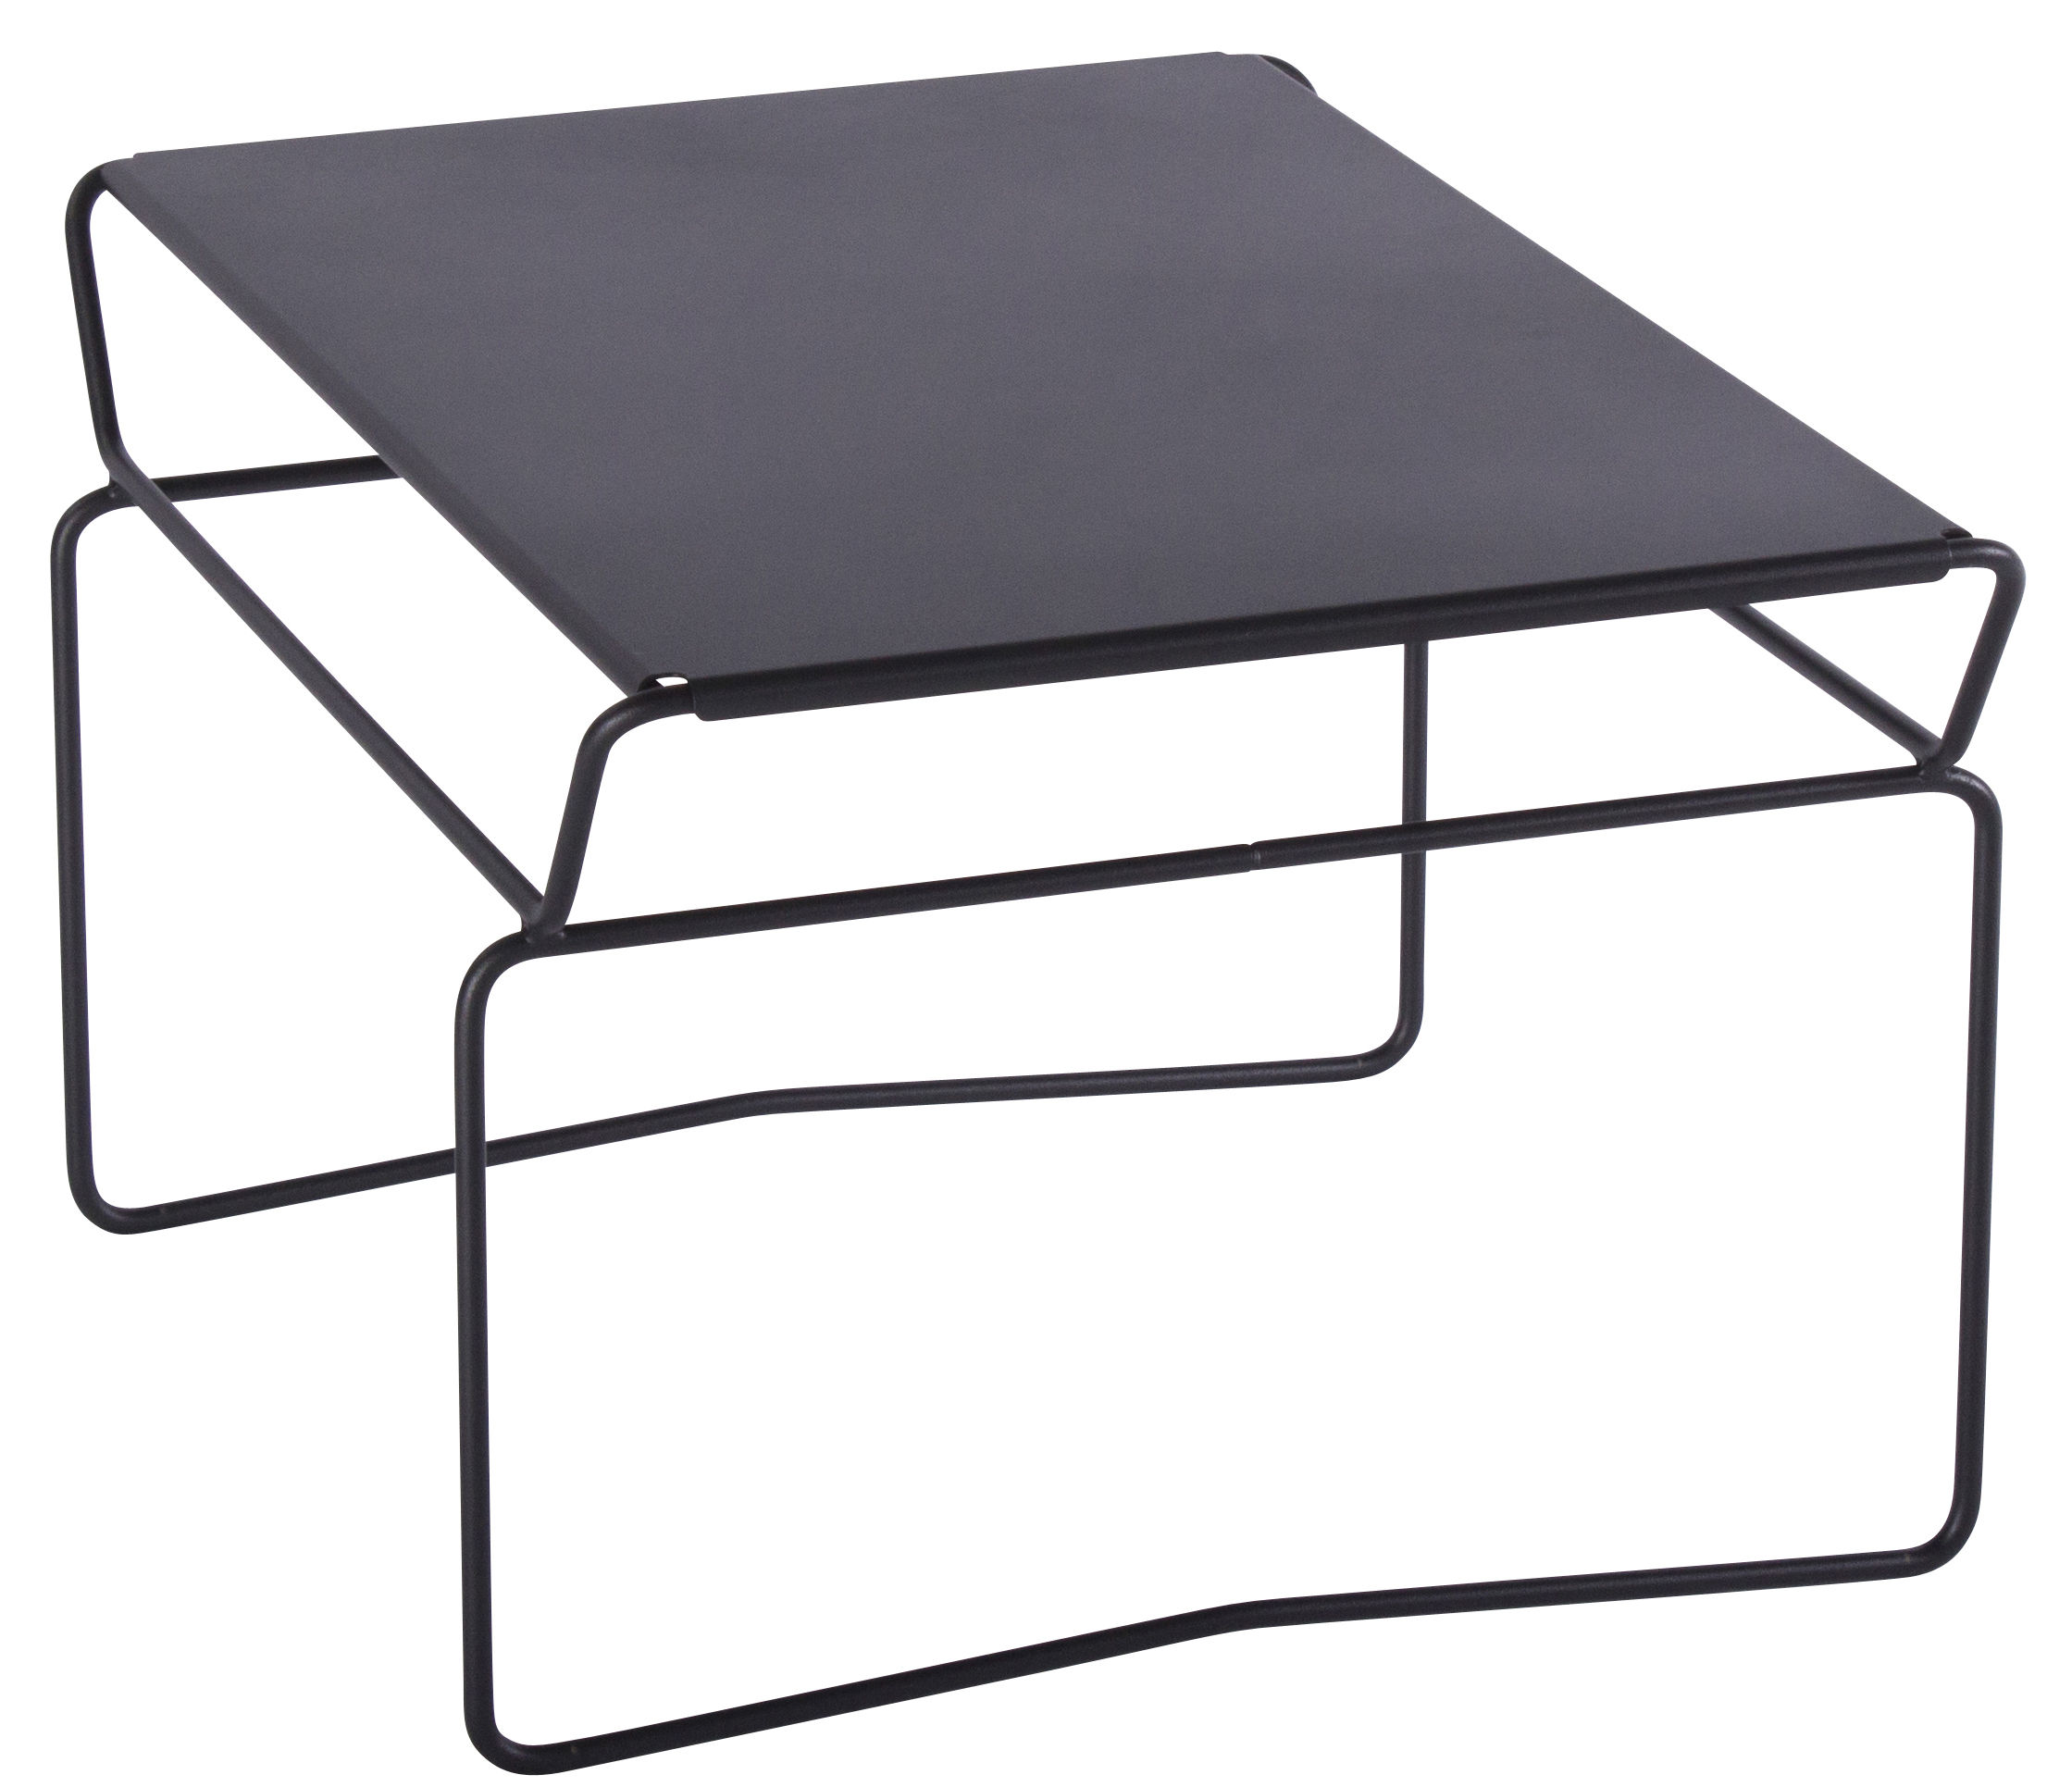 Furniture - Coffee Tables - Fil Master Coffee table by AA-New Design - Black top / Black structure - Epoxy lacquered steel